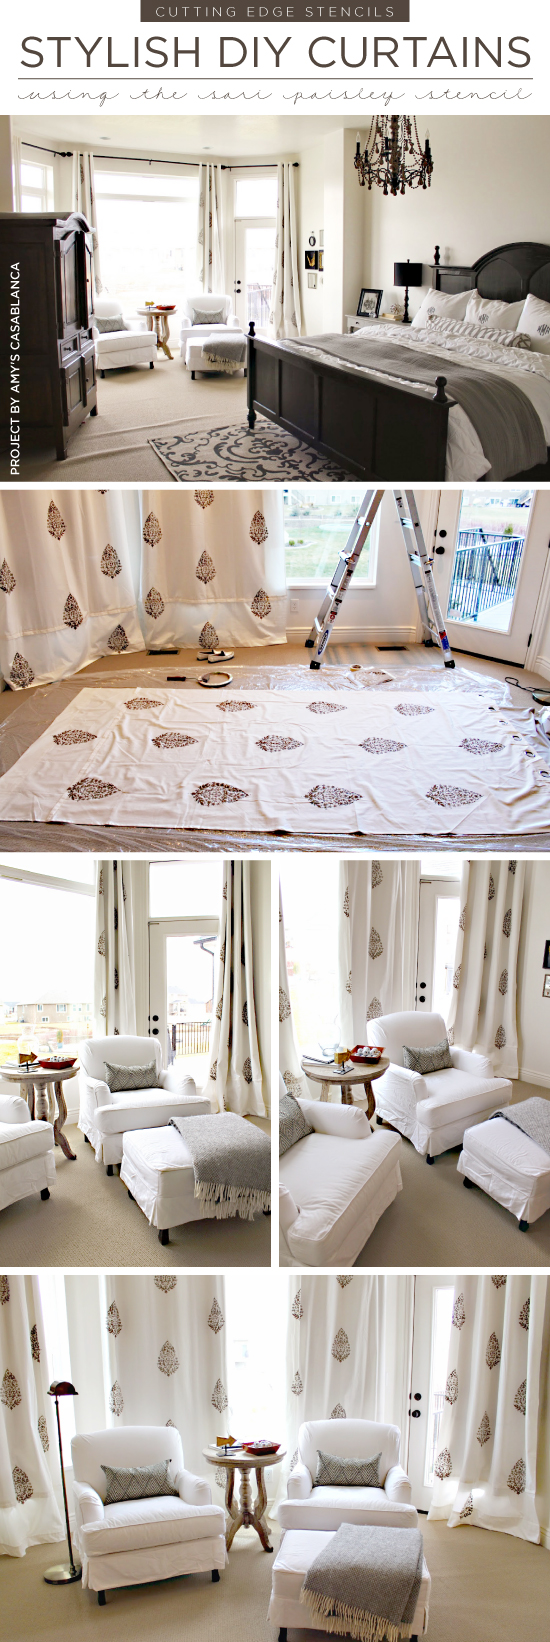 ... Cutting Edge Stencils Shares Diy Stenciled Curtains In A Master Bedroom  Using The Sari Paisley Stencil ...